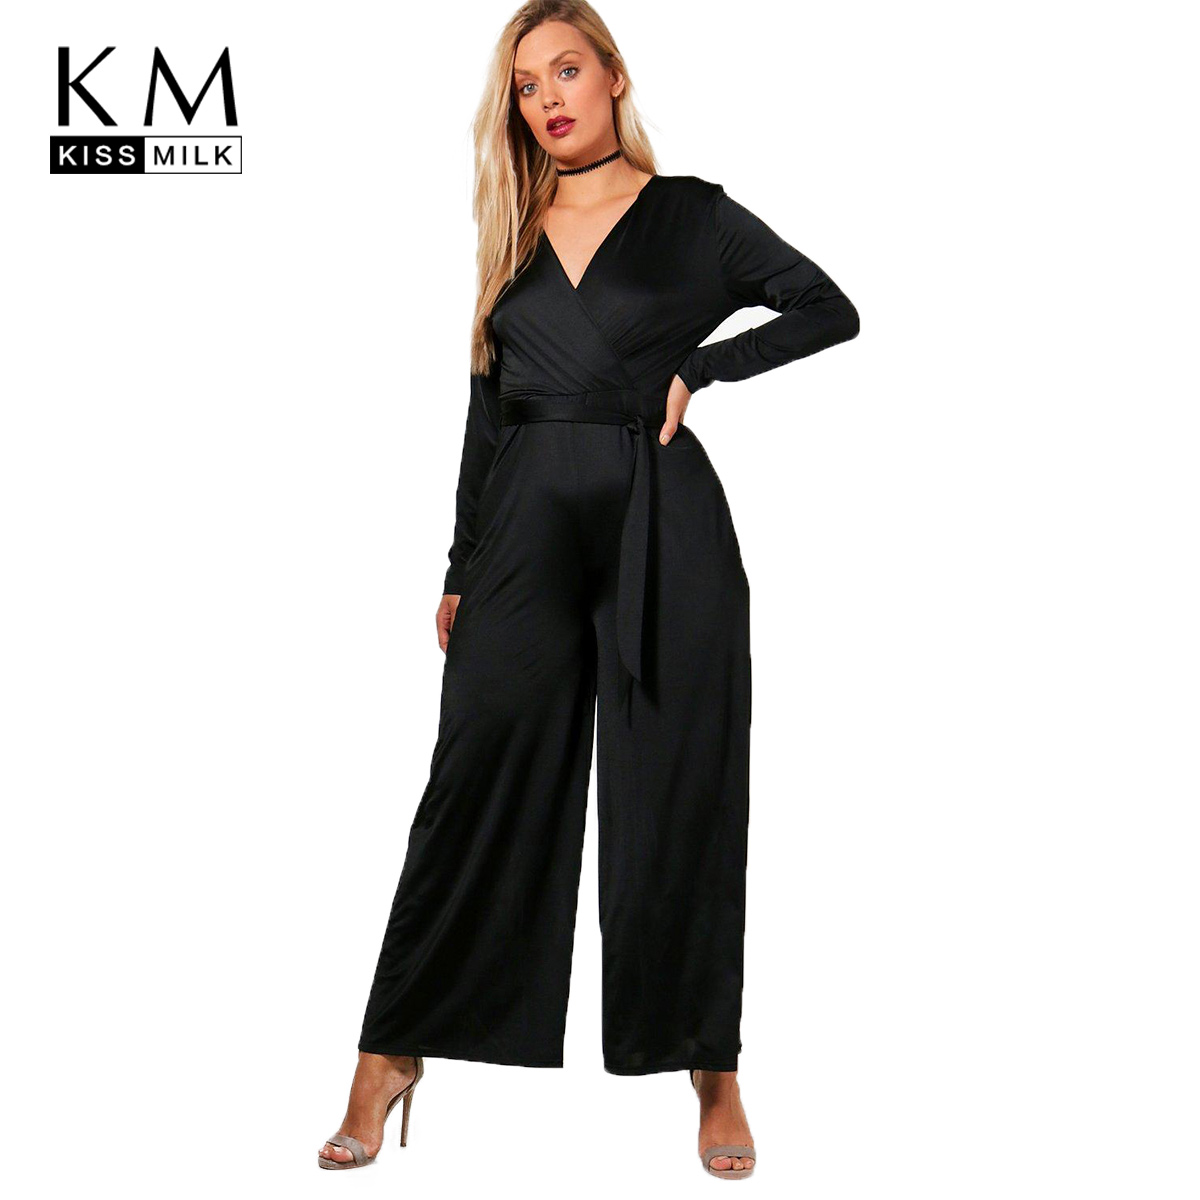 cadf19c68df1 Detail Feedback Questions about kissmilk 2018 Plus Size Sexy Office Lady Women  Jumpsuits V neck Lace Up Straight Female Clothing Solid Black Big Size ...